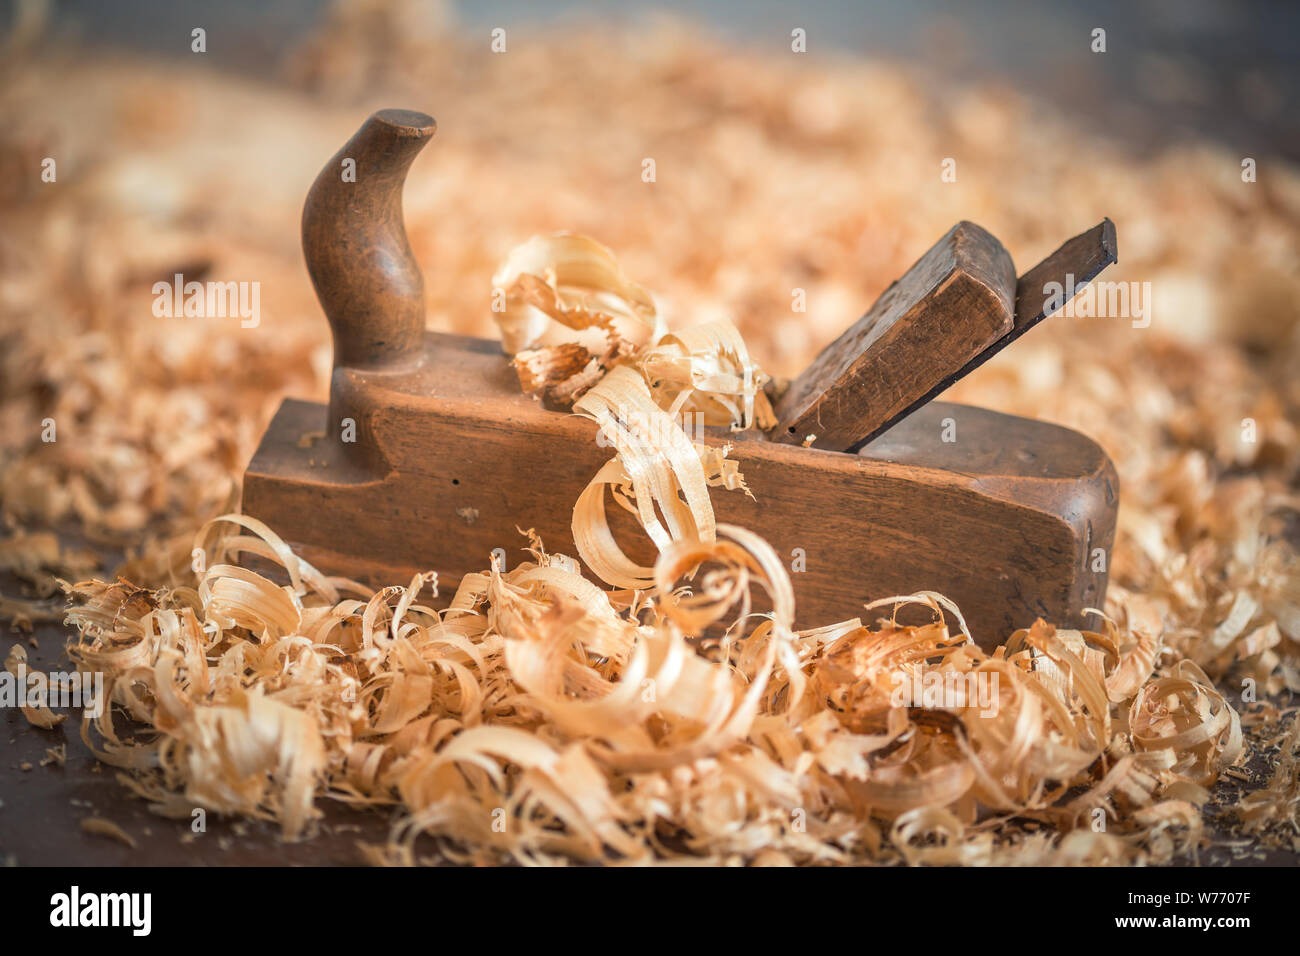 Old wooden hand plane for woodworking with wood shavings. Stock Photo